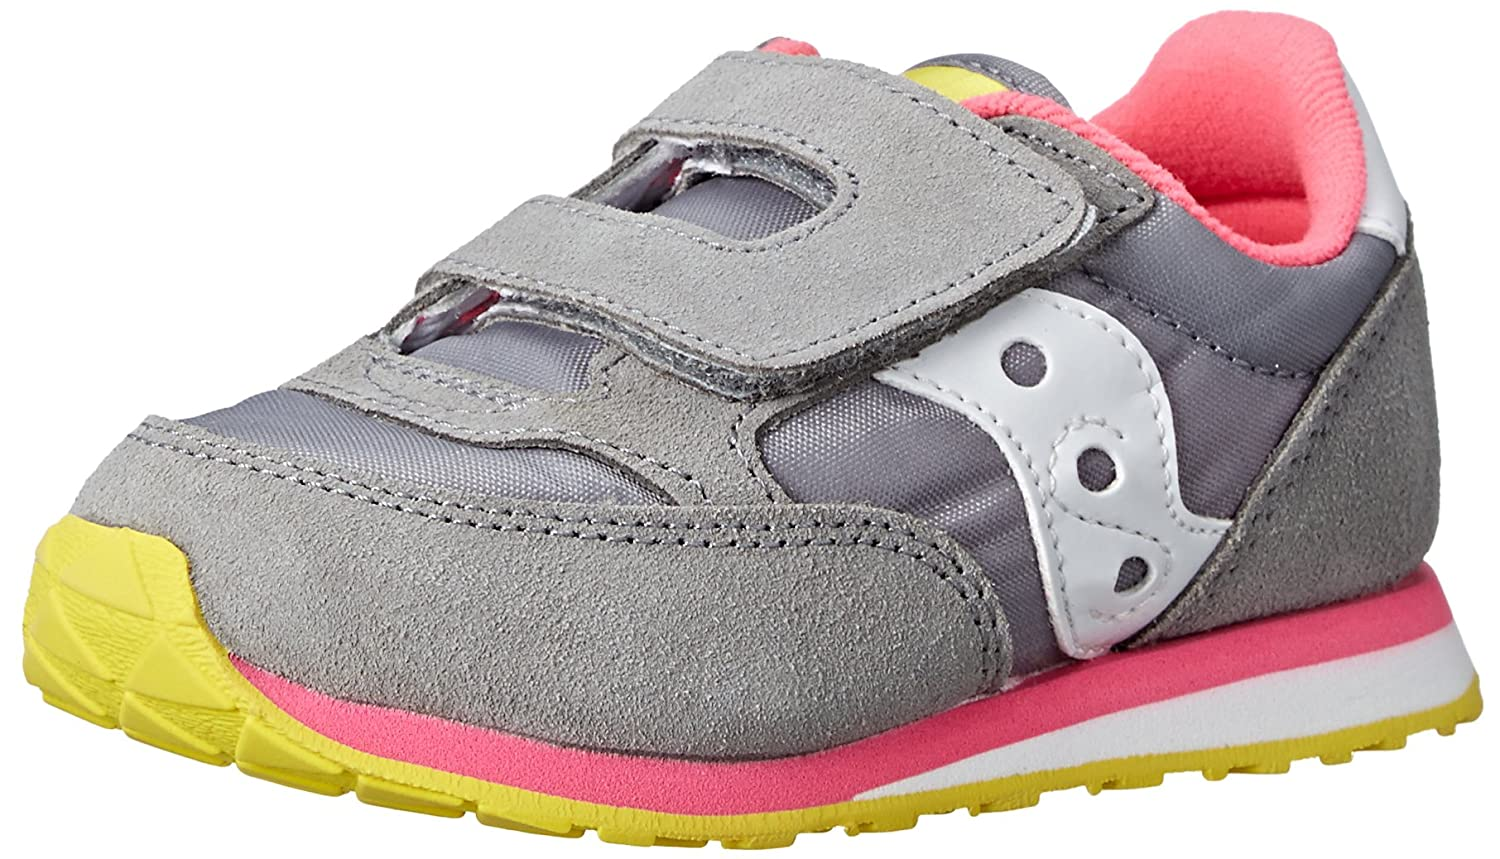 competitive price 63ecd 1348f Saucony Jazz Hook & Loop Sneaker (Toddler/Little Kid), Grey/Pink, 8 M US  Toddler